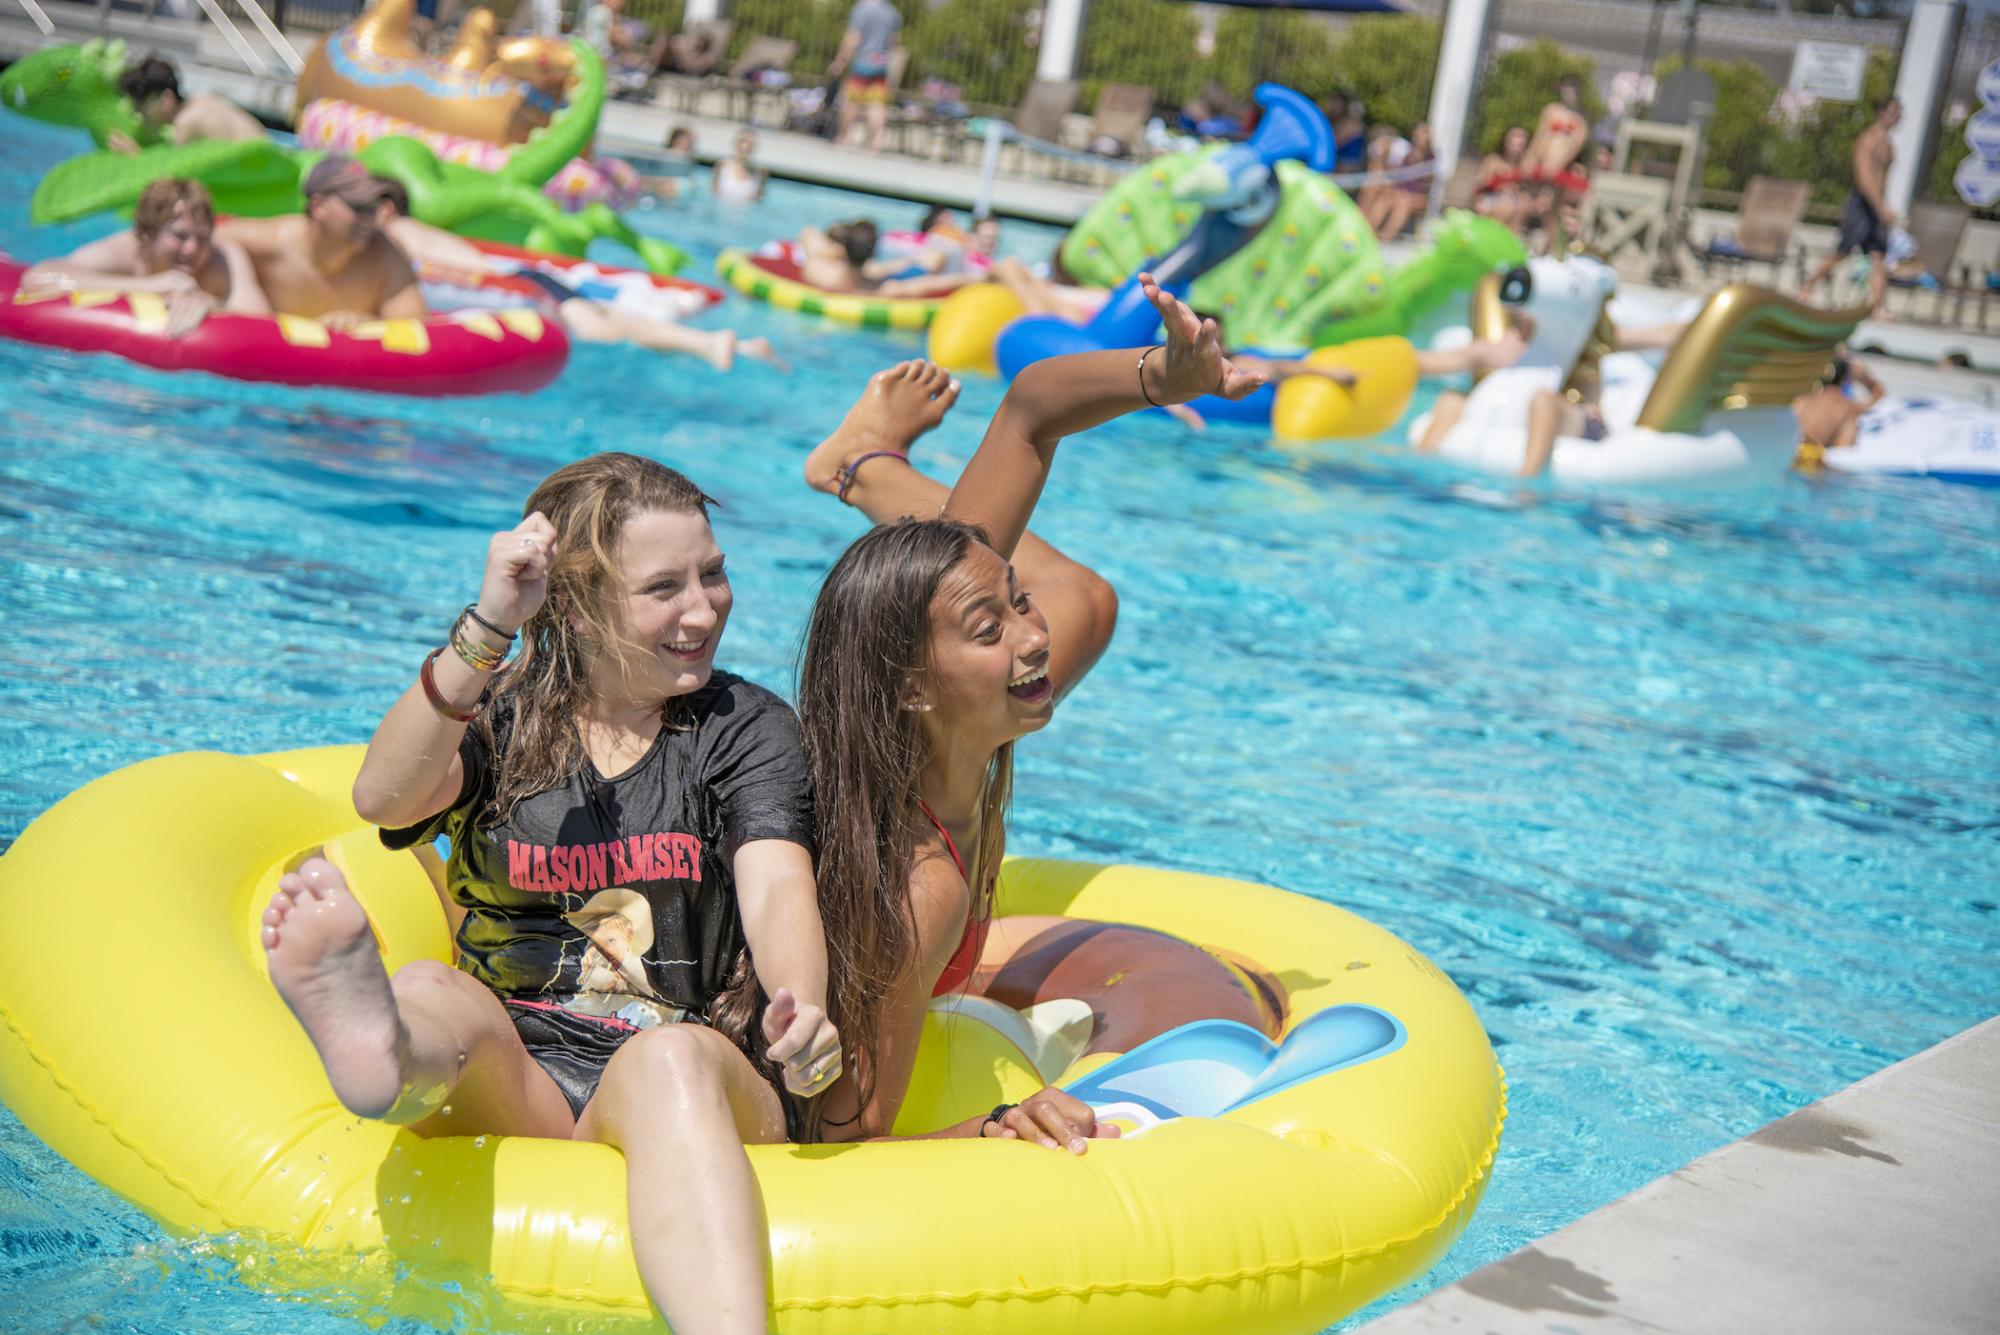 Students having fun at the campus pool party.